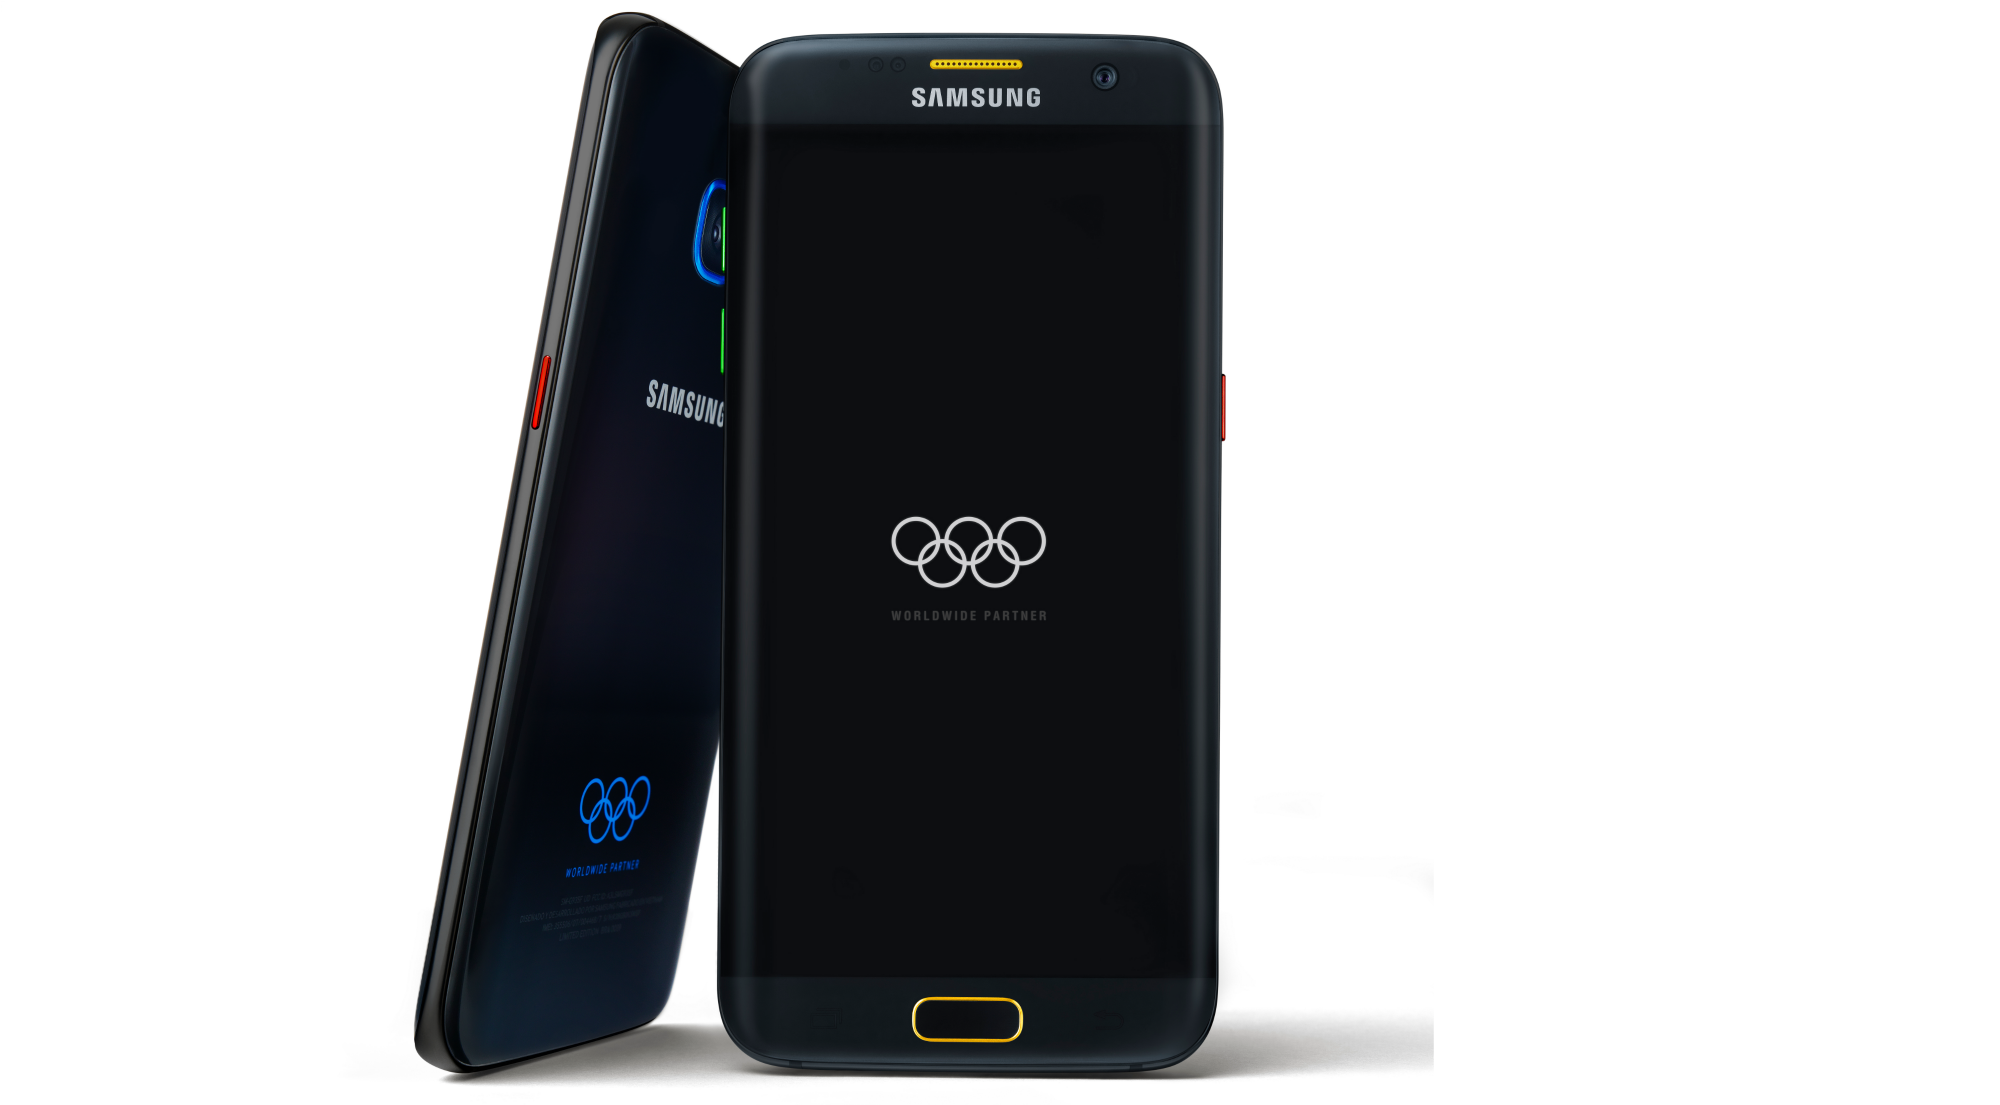 Samsung Galaxy S7 Edge Olympic Games Limited Edition 2